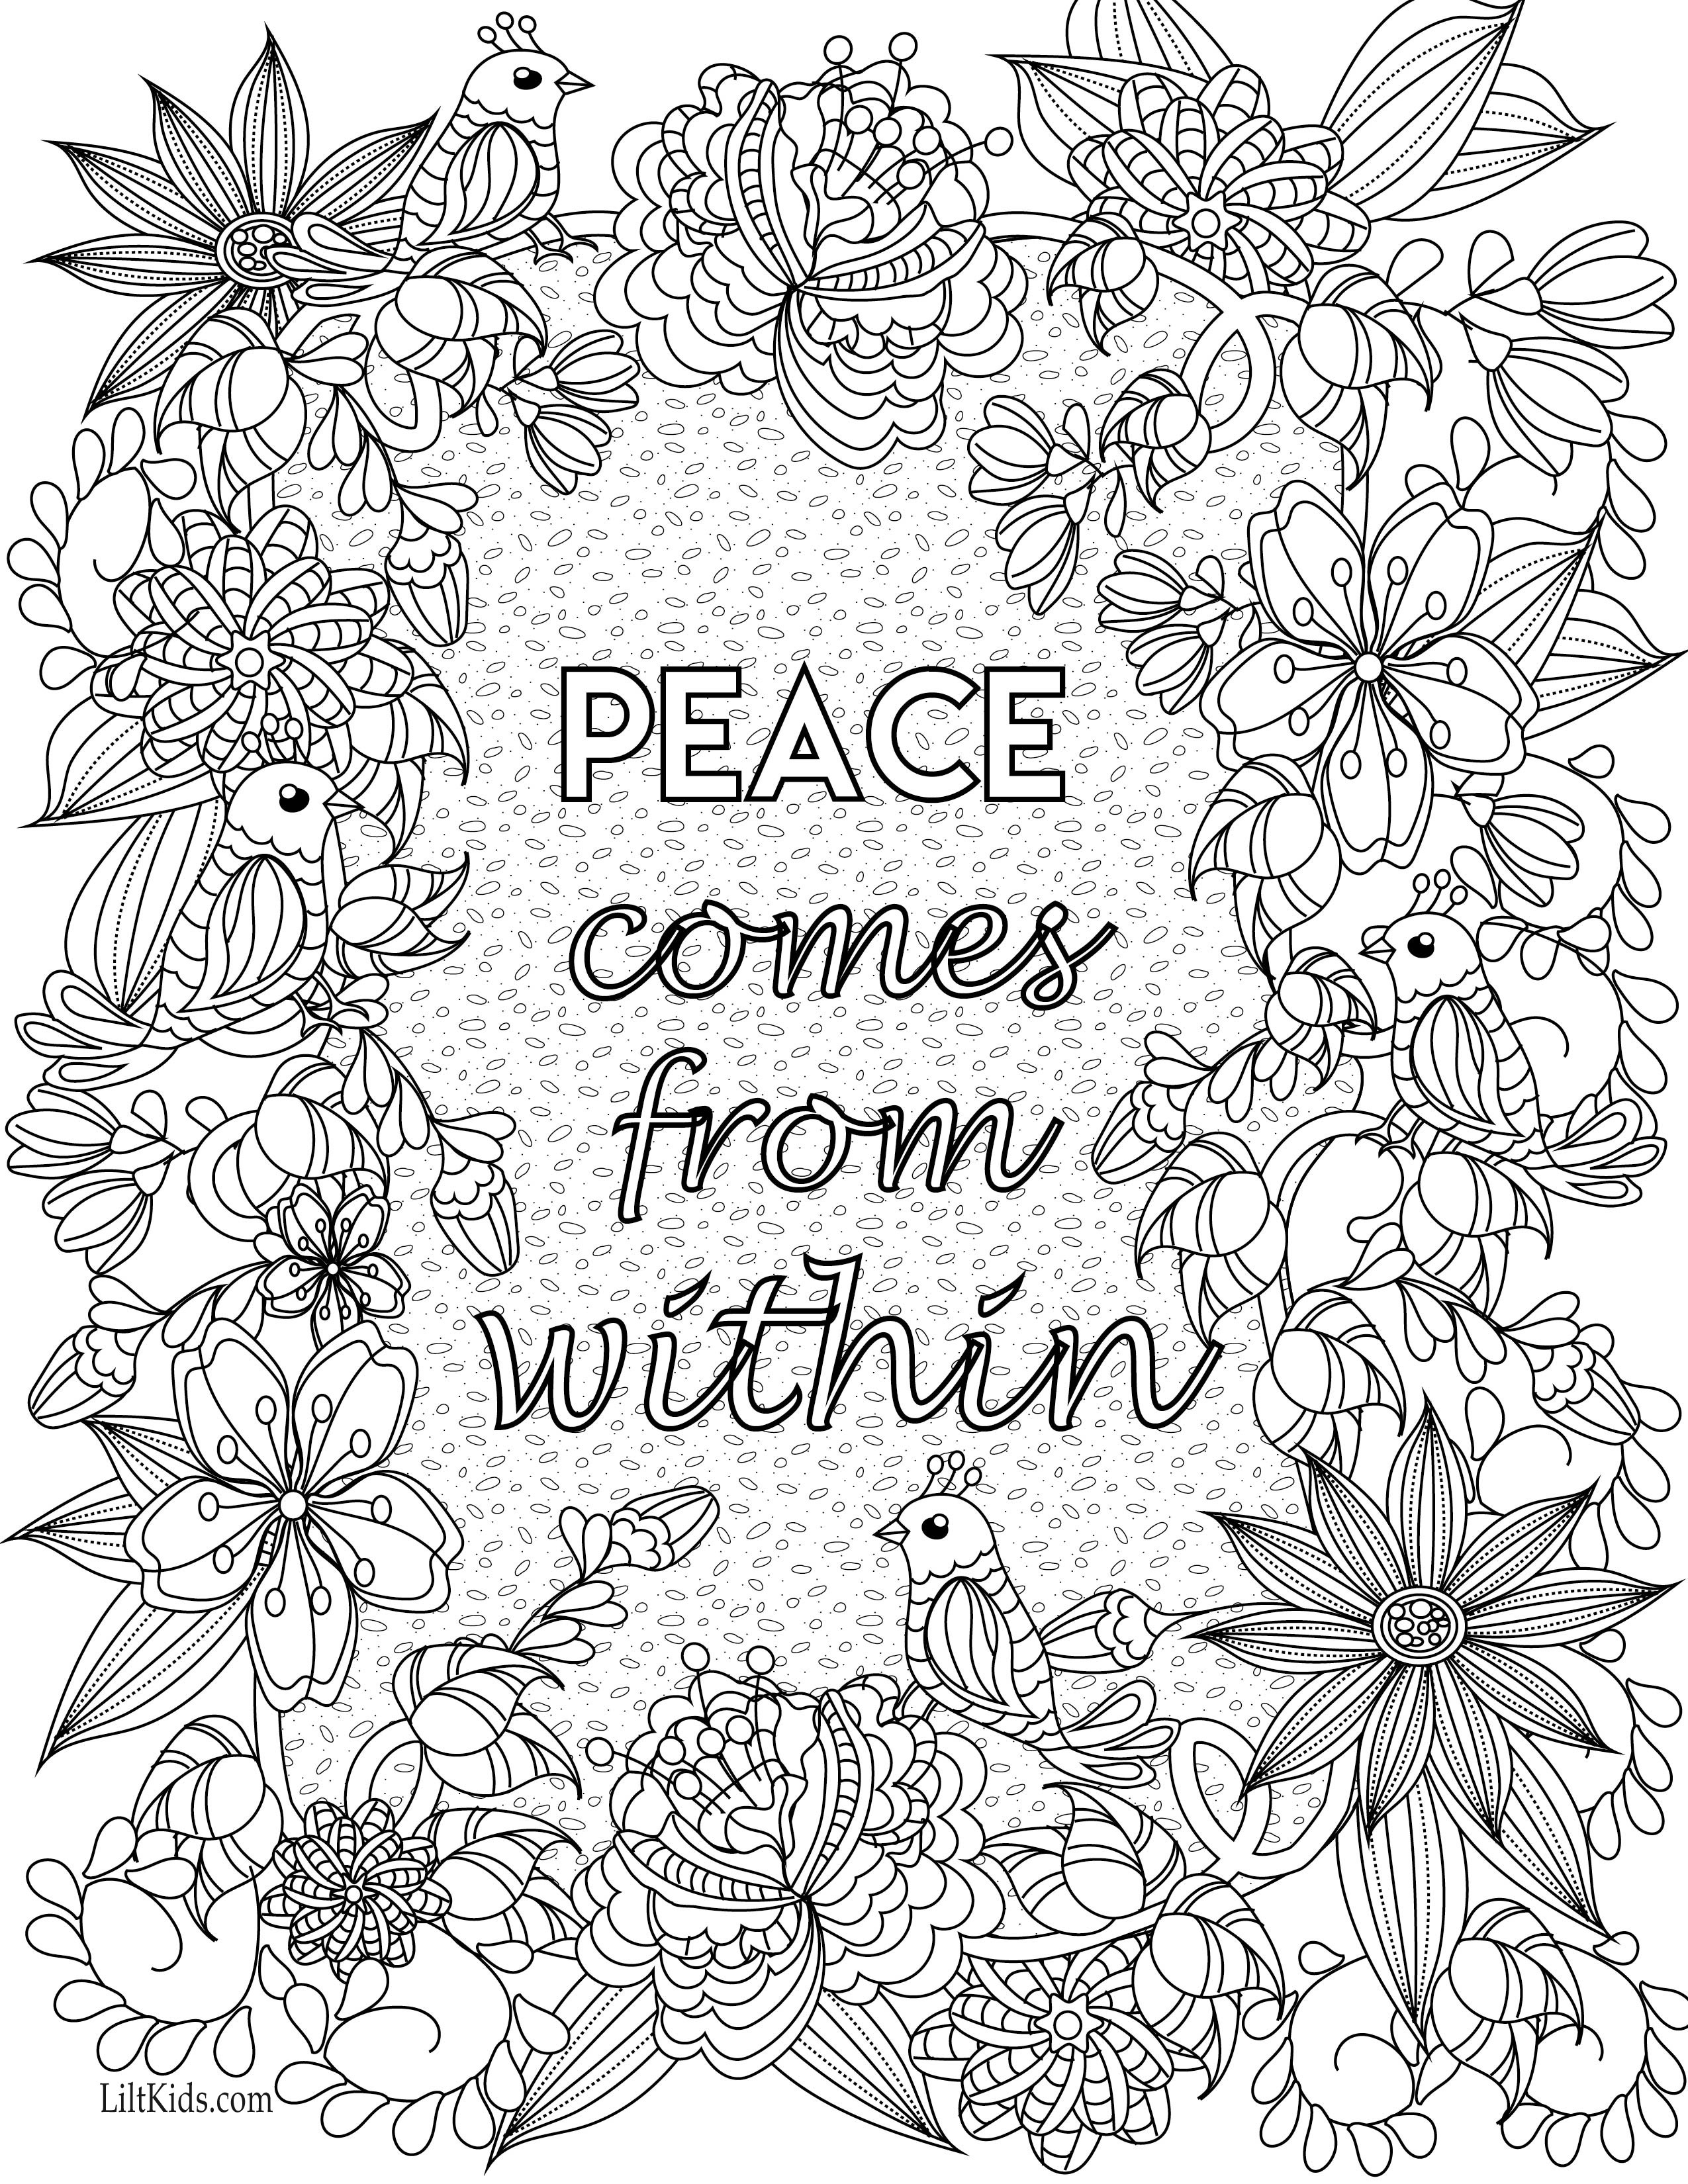 Lilt Kids Coloring Books Free Adult Coloring Book Pages